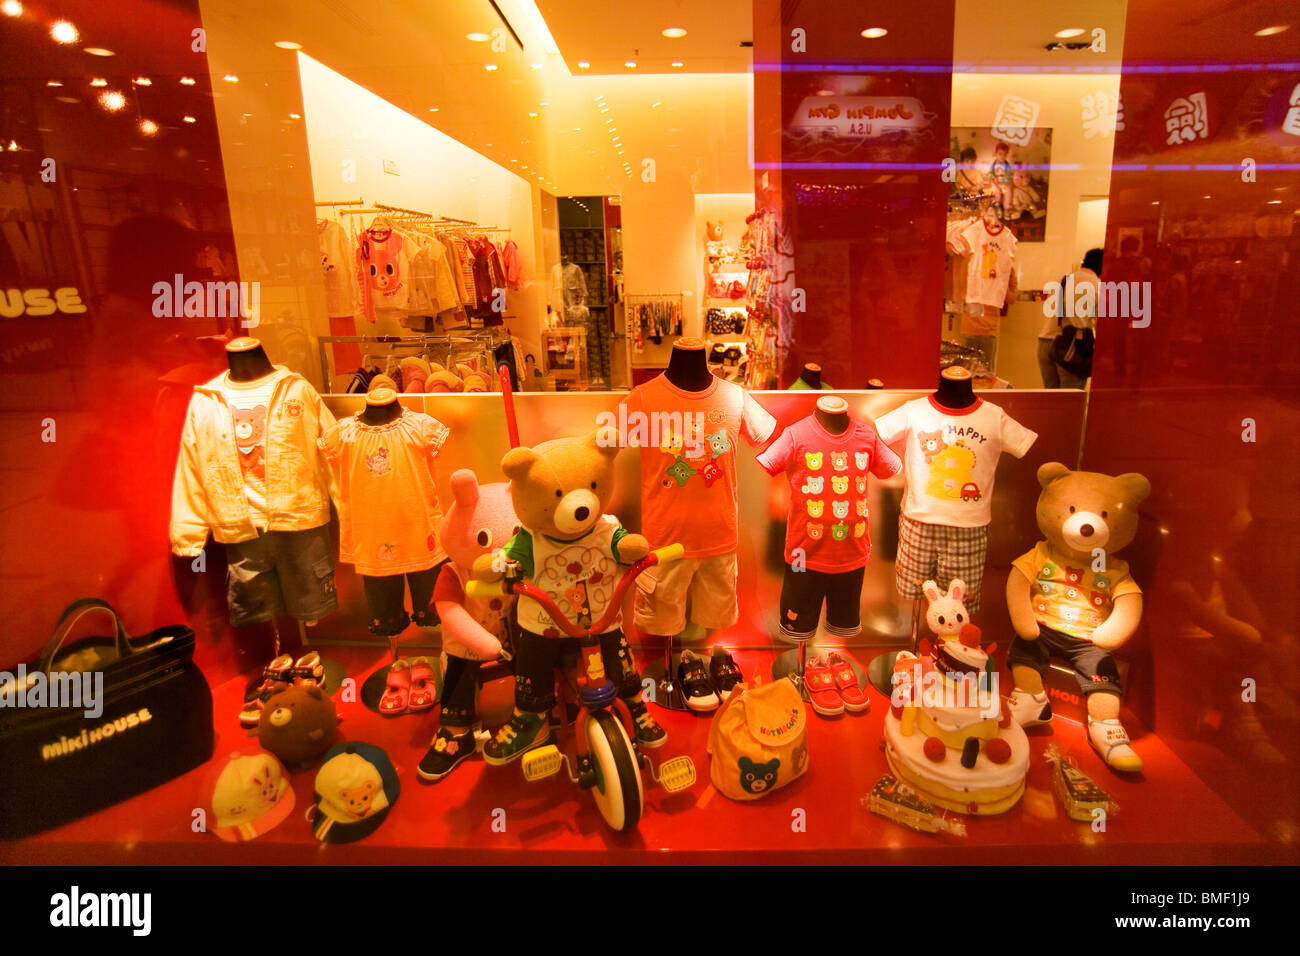 Shop window of a children's clothing store, International Finance Centre, Central District, Hong Kong, China - Stock Image